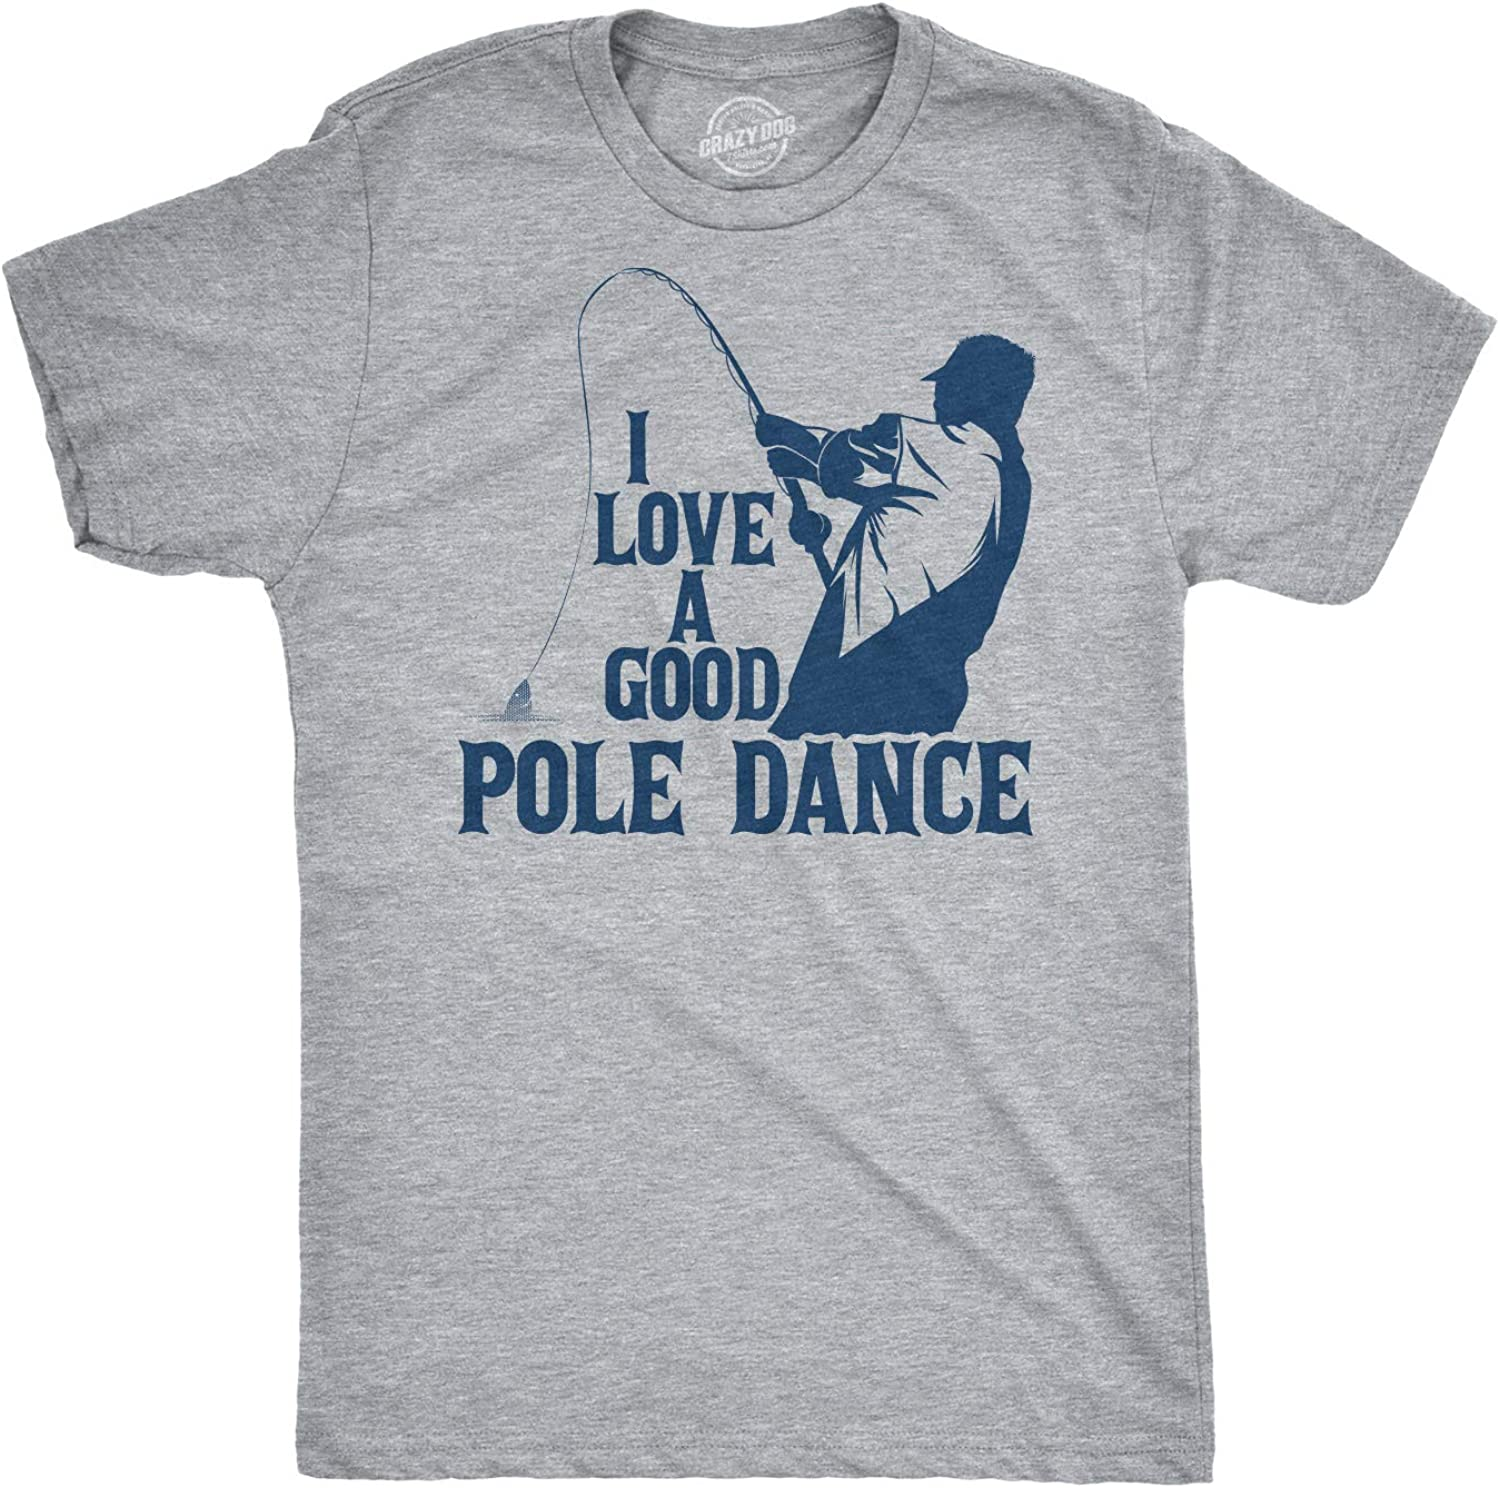 Mens I Love A Good Pole Dance T Shirt Funny Fishing Tee for Fisherman Gift Guys